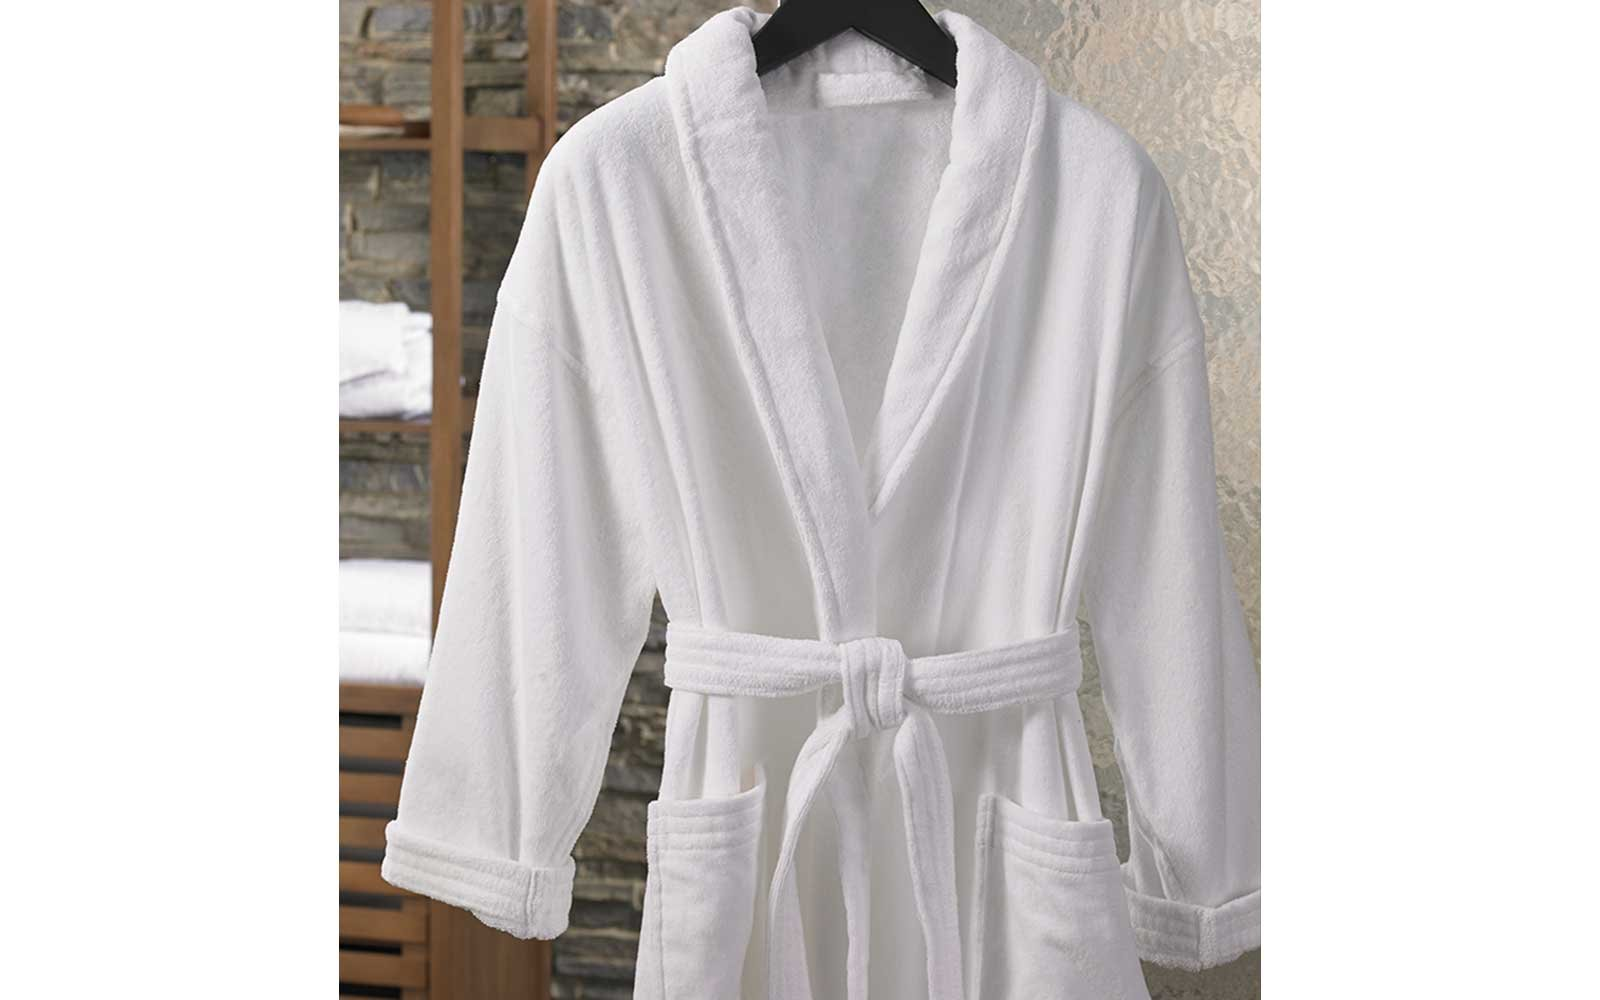 15 Luxury Hotel Quality Bathrobes You Can Buy Online